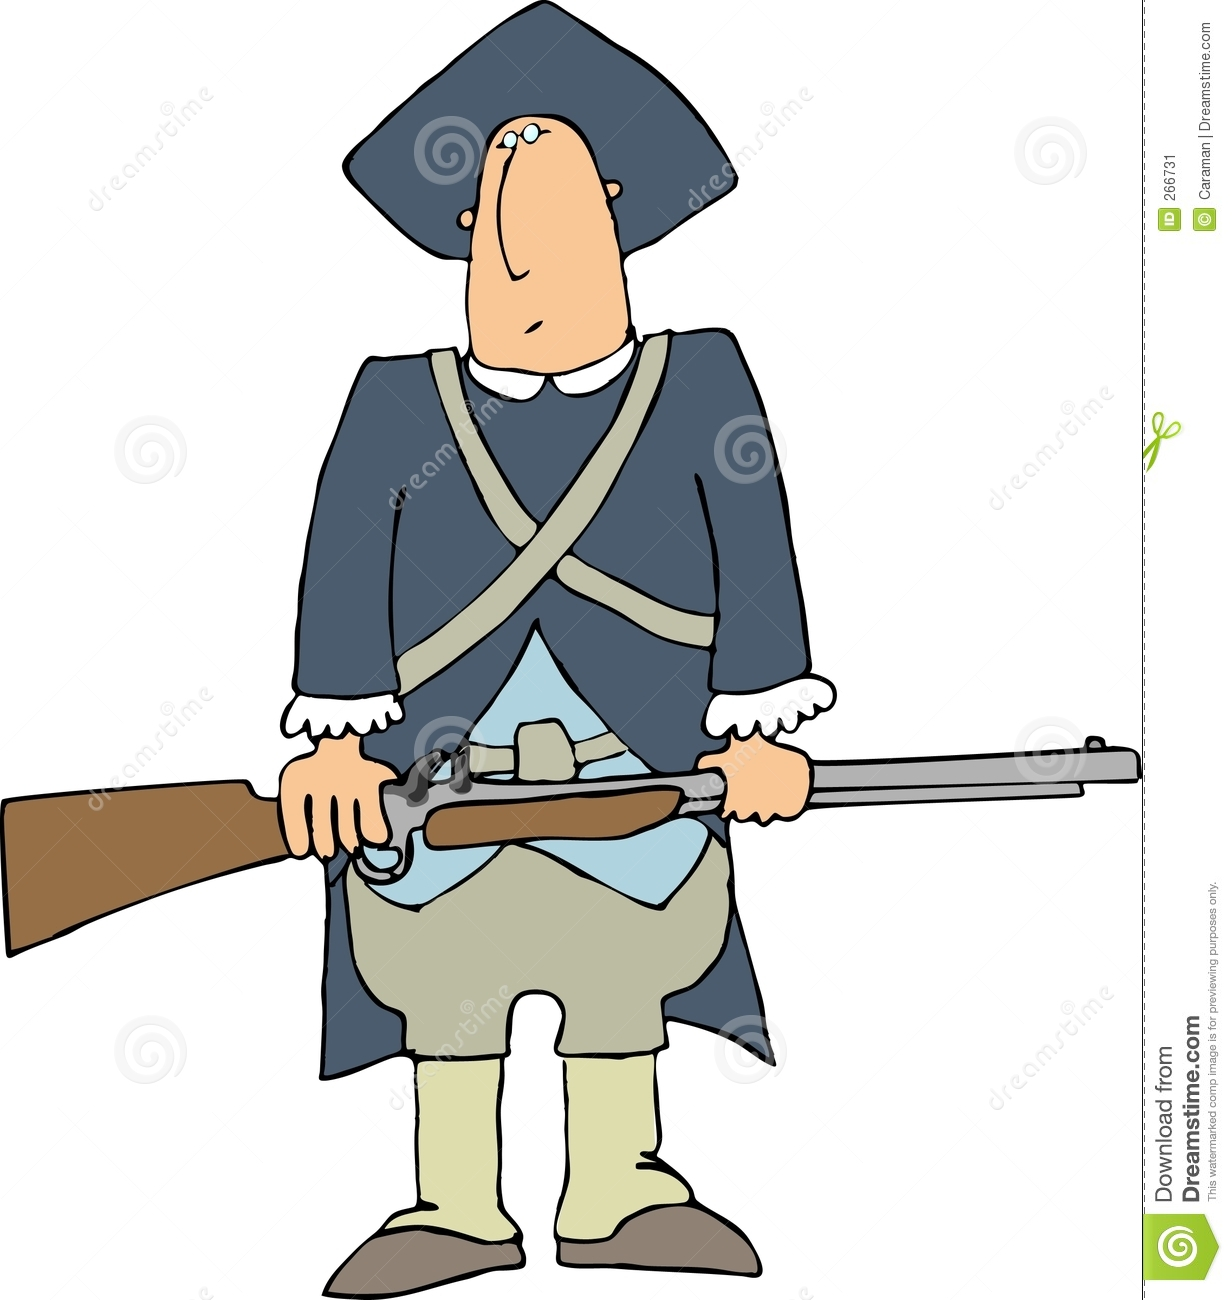 Colonial Soldier Stock Illustrations – 16 Colonial Soldier Stock ...